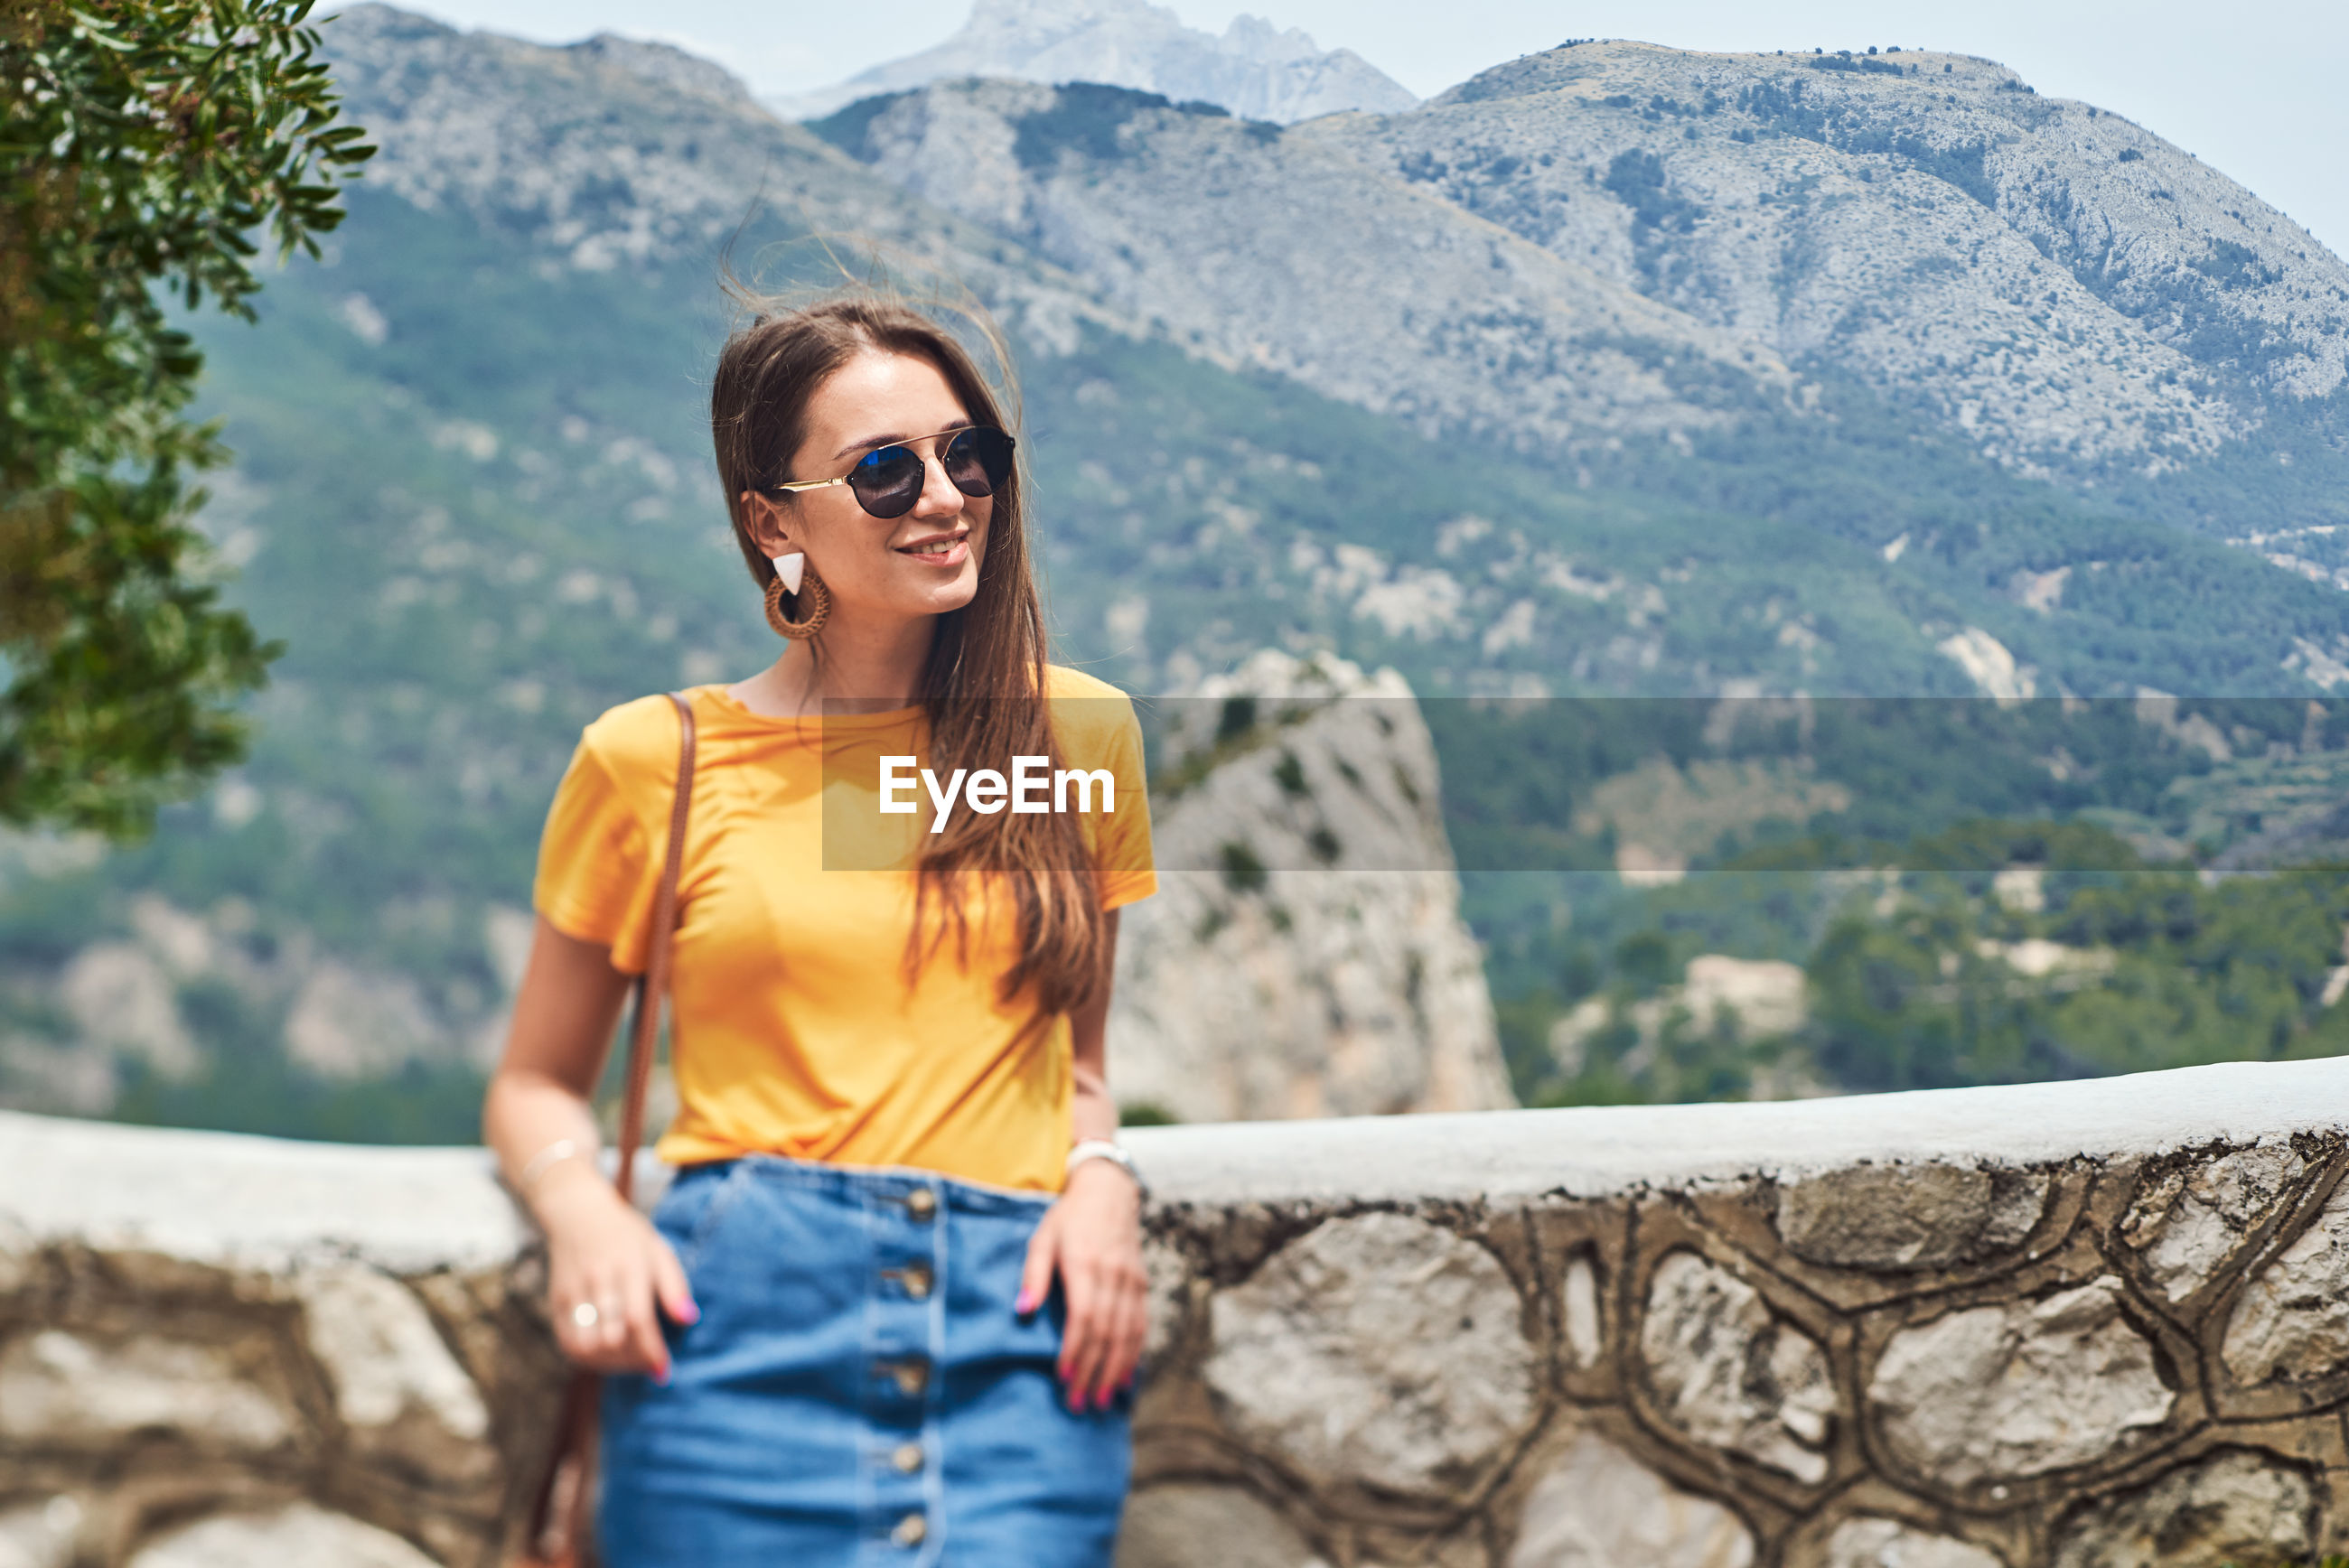 WOMAN WEARING SUNGLASSES STANDING ON MOUNTAIN